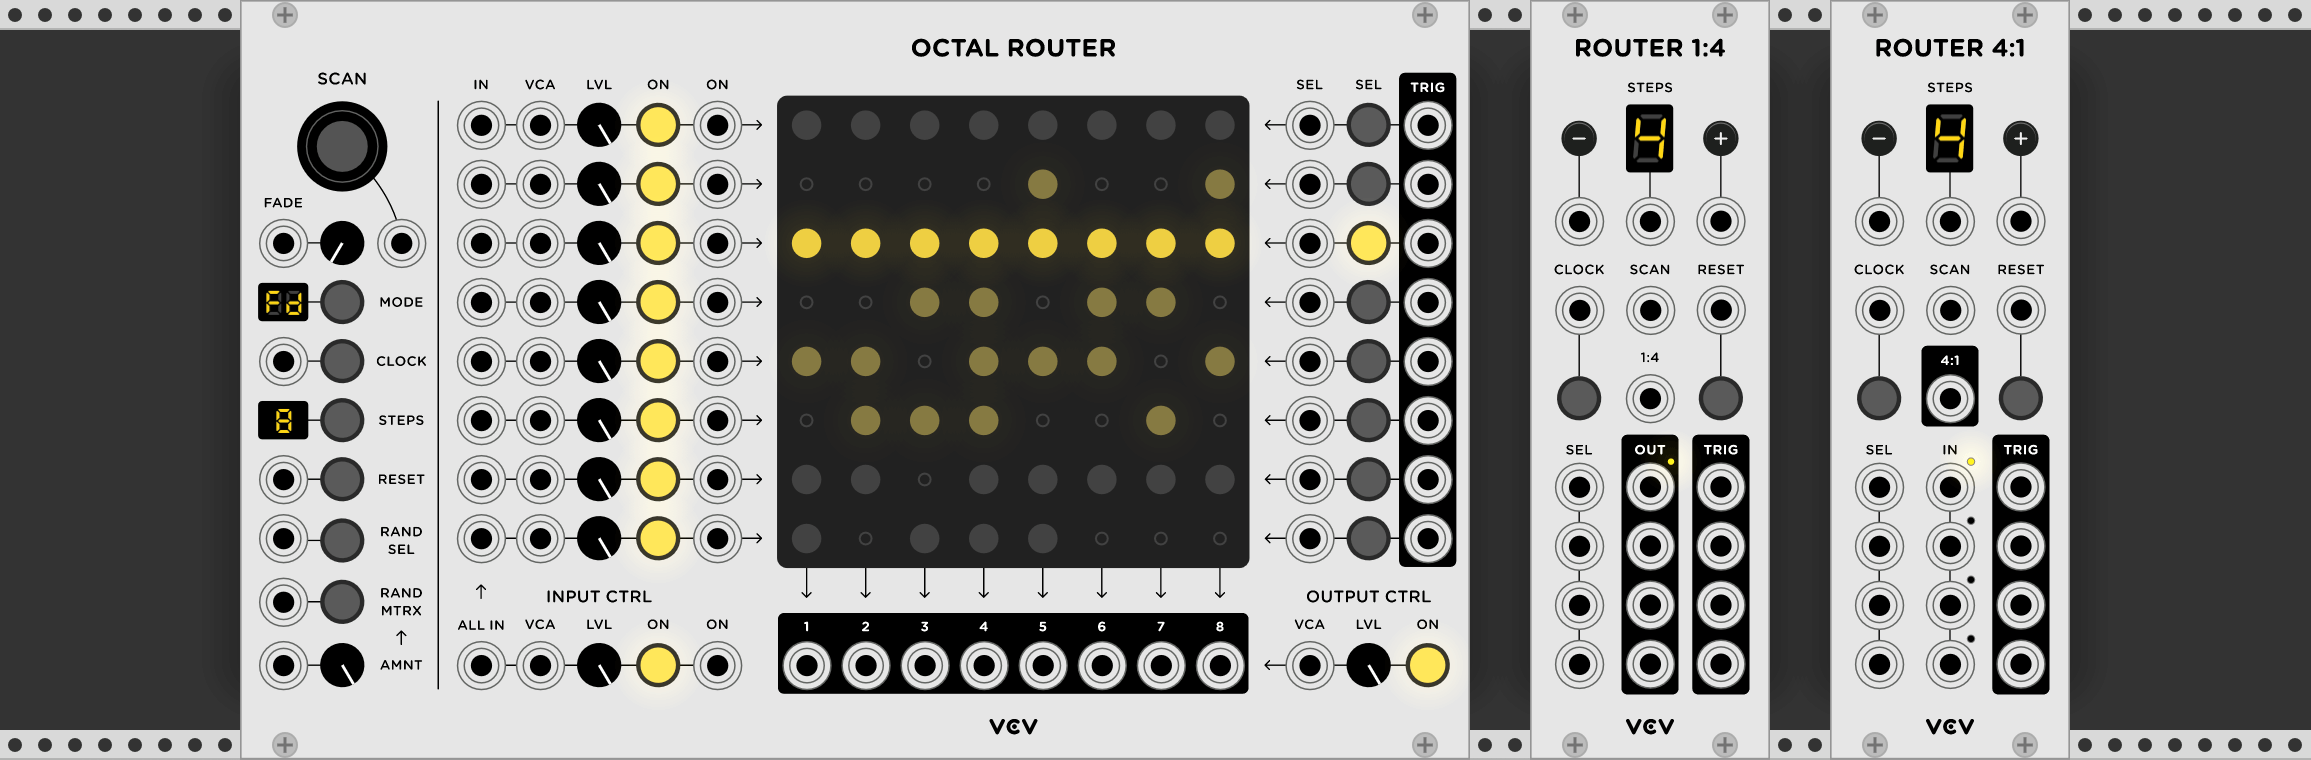 router sequential switch matrix for vcv rack released